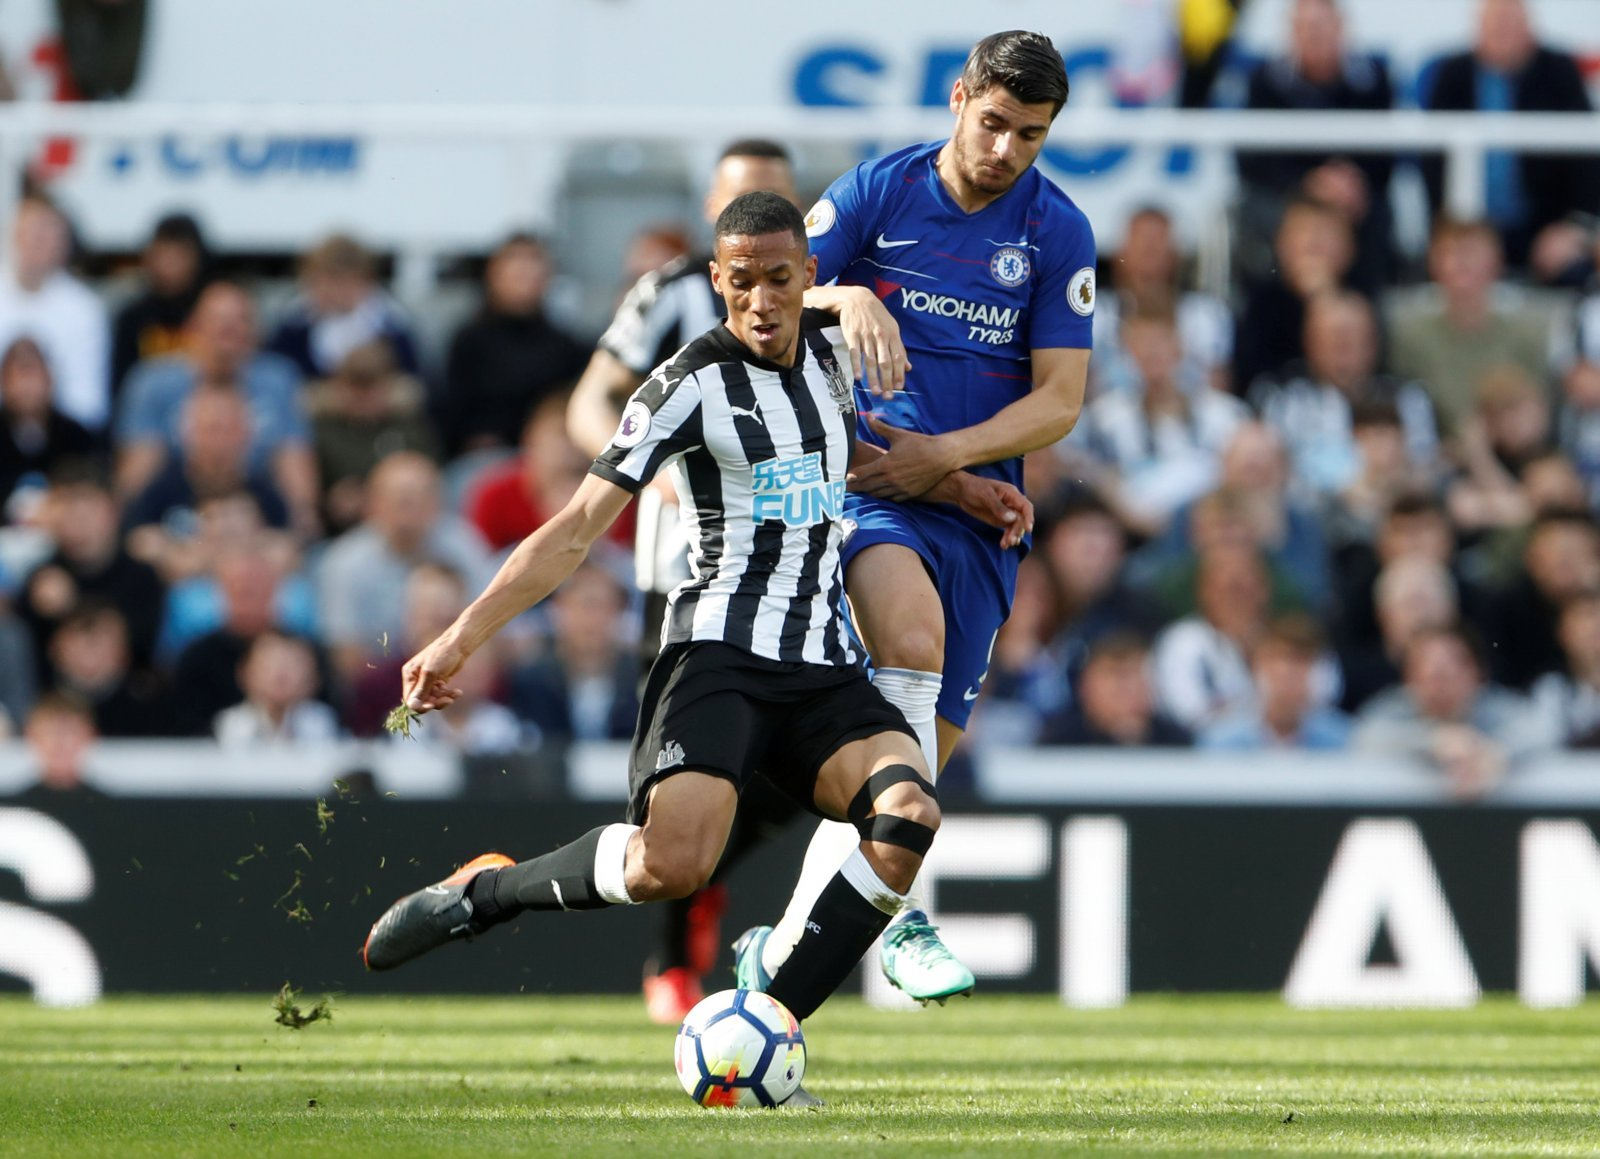 Palace should seek Newcastle's Isaac Hayden as part of possible Andros Townsend deal